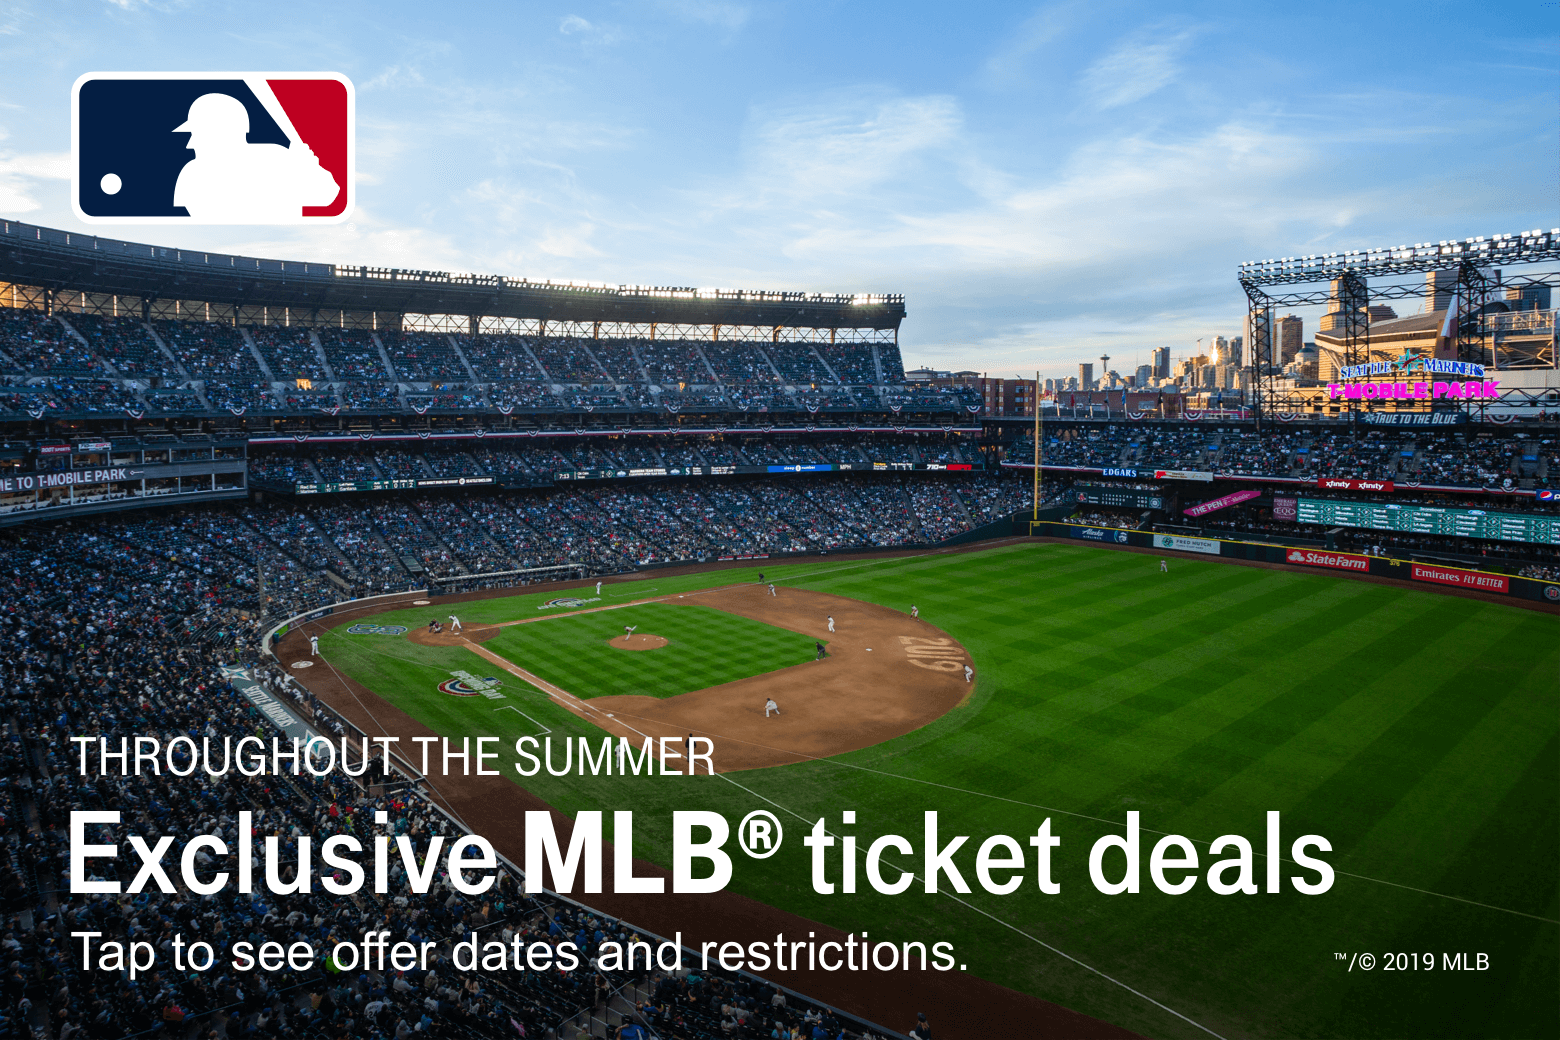 Throughout the summer. Exclusive MLB® ticket deals. Tap to see offer dates and restrictions.